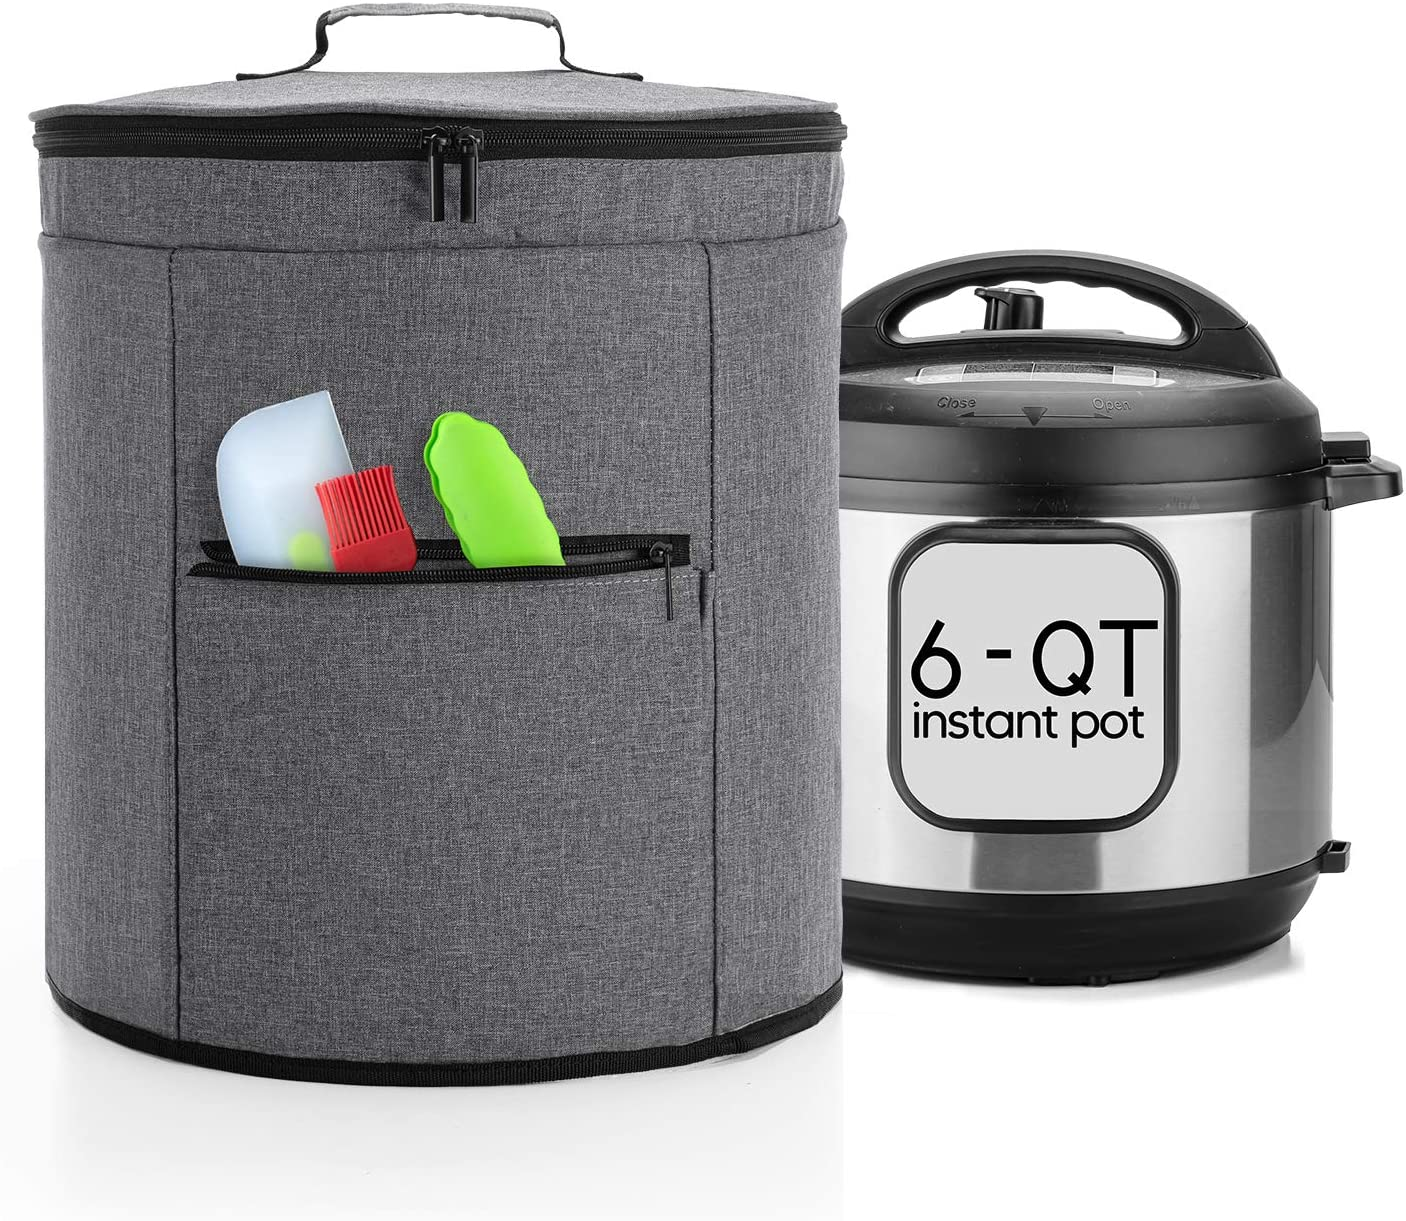 Luxja 2 Layers Cover Compatible with 6 Quart Instant Pot, Pressure Cooker Cover with Zipper Sections (Compatible with 6 Quart Instant Pot), Gray